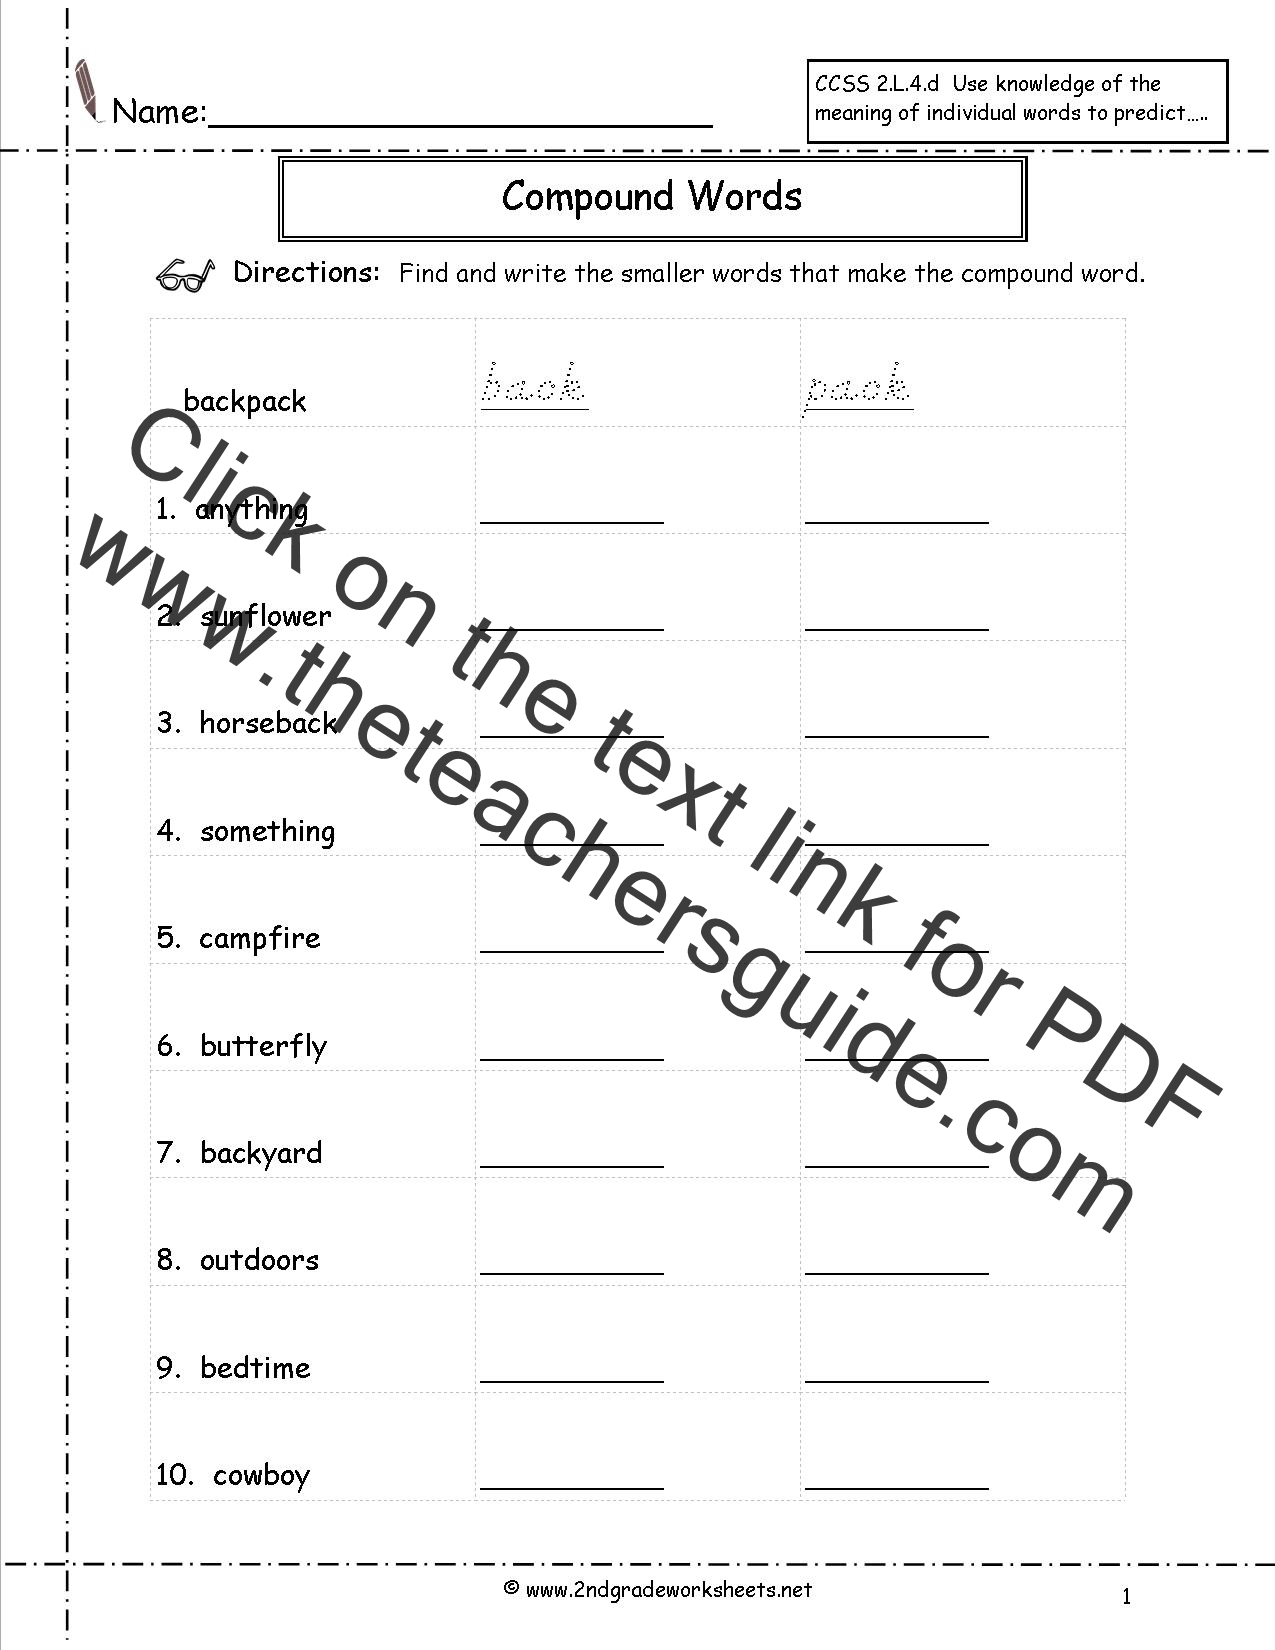 Printables Free Second Grade Language Arts Worksheets free languagegrammar worksheets and printouts compound words worksheets